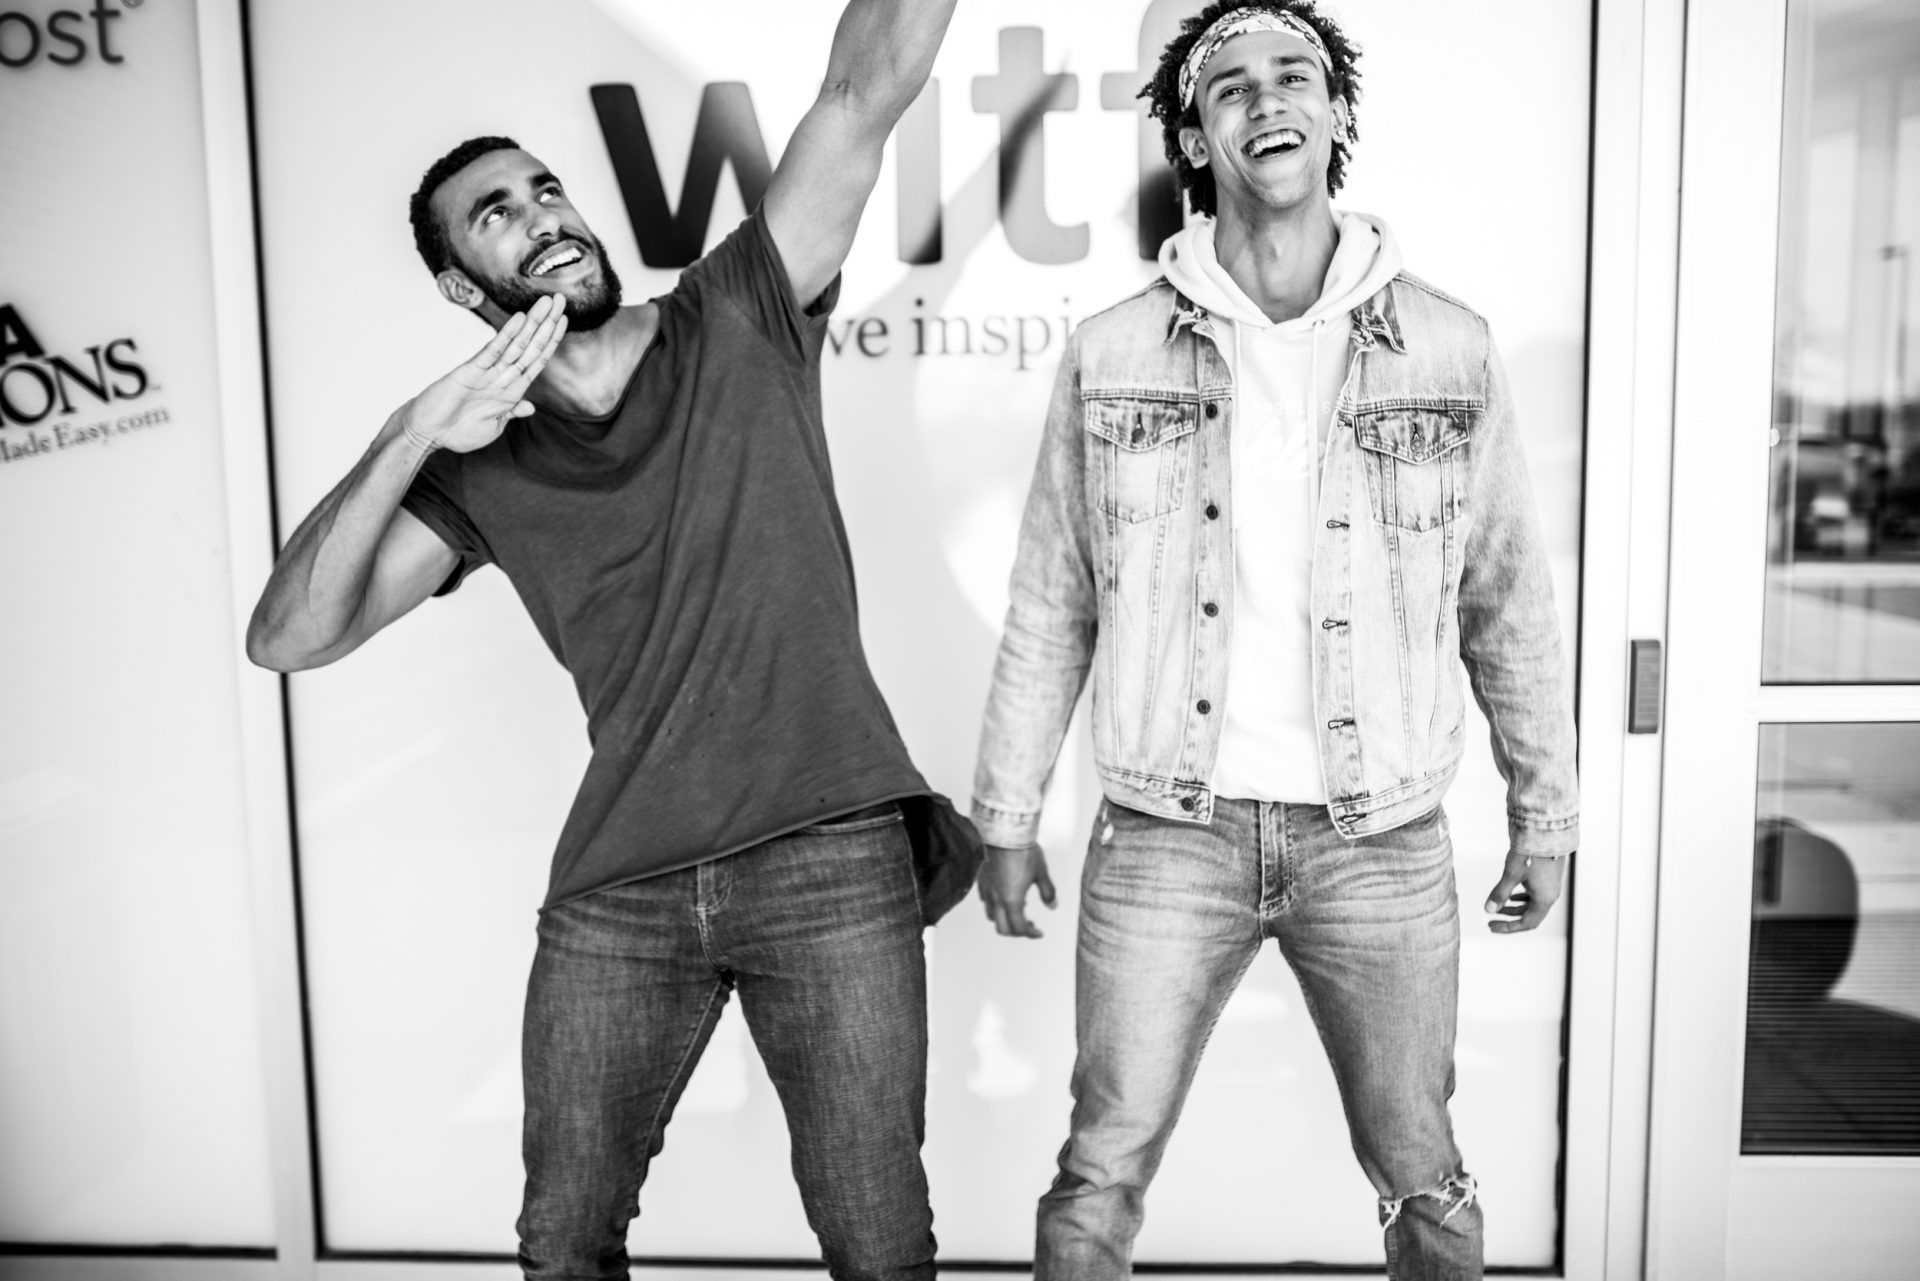 Jordan and Cory Dandy goofing off in front of the WITF Public Media Center